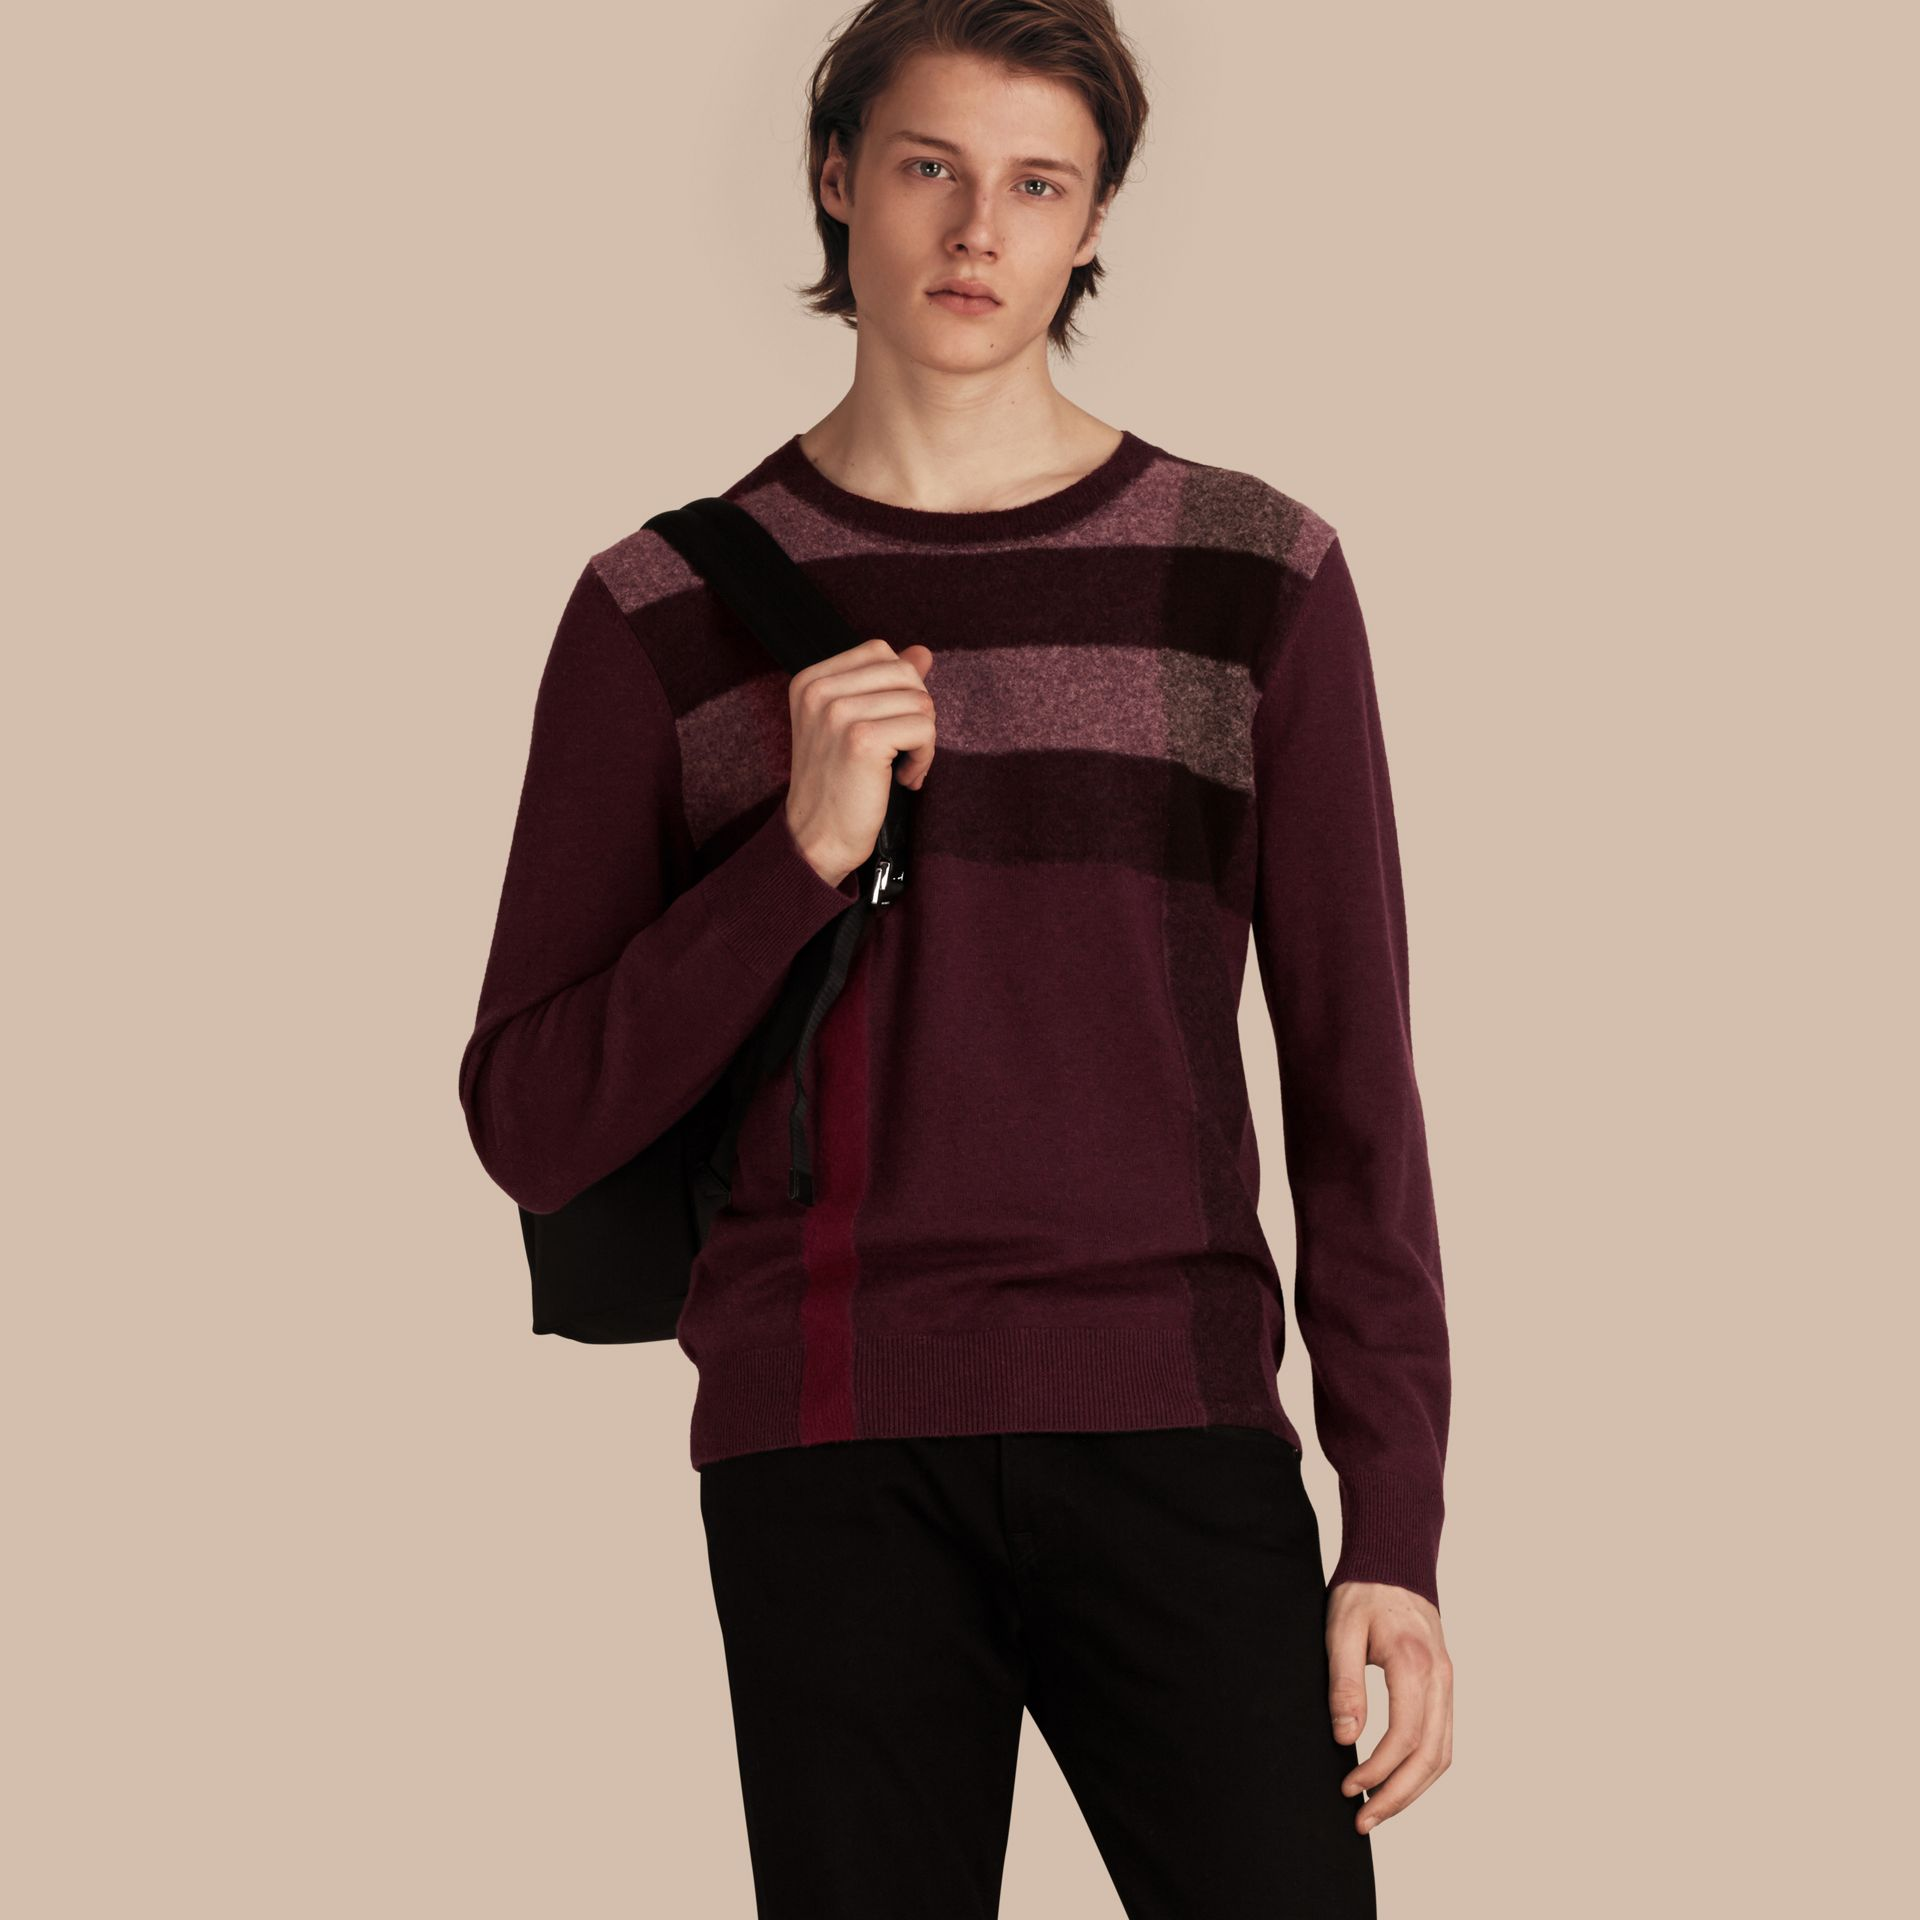 Graphic Check Cashmere Cotton Sweater Burgundy Red - gallery image 1